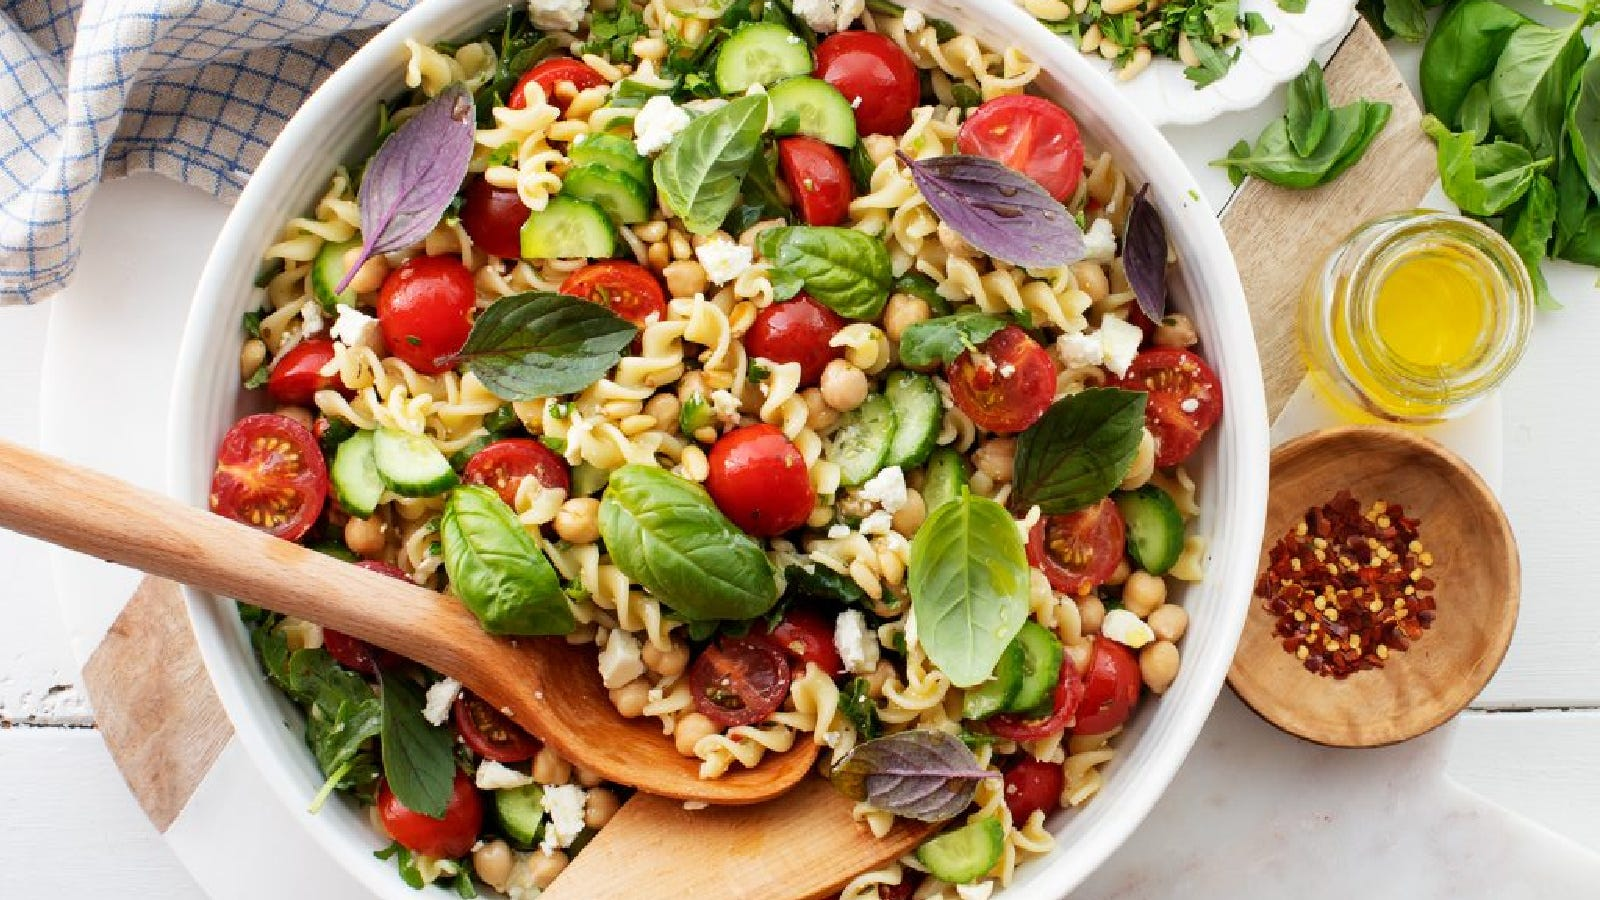 A large bowl of pasta salad filled with feta cheese, cucumbers, tomatoes, basil and more.